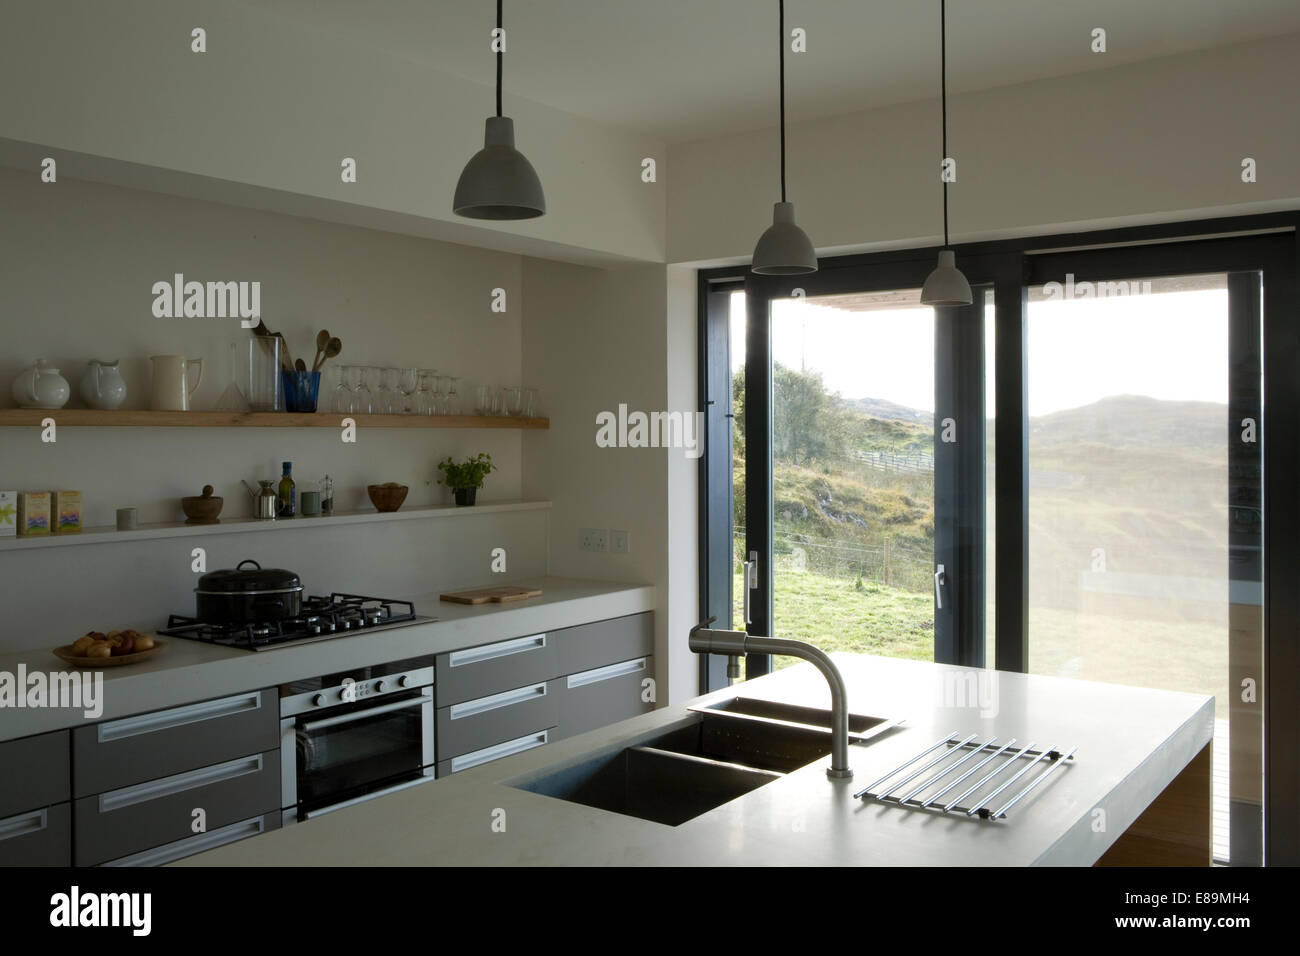 Double Sink In Central Island Unit In Modern Kitchen Stock Photo 73972448 Alamy